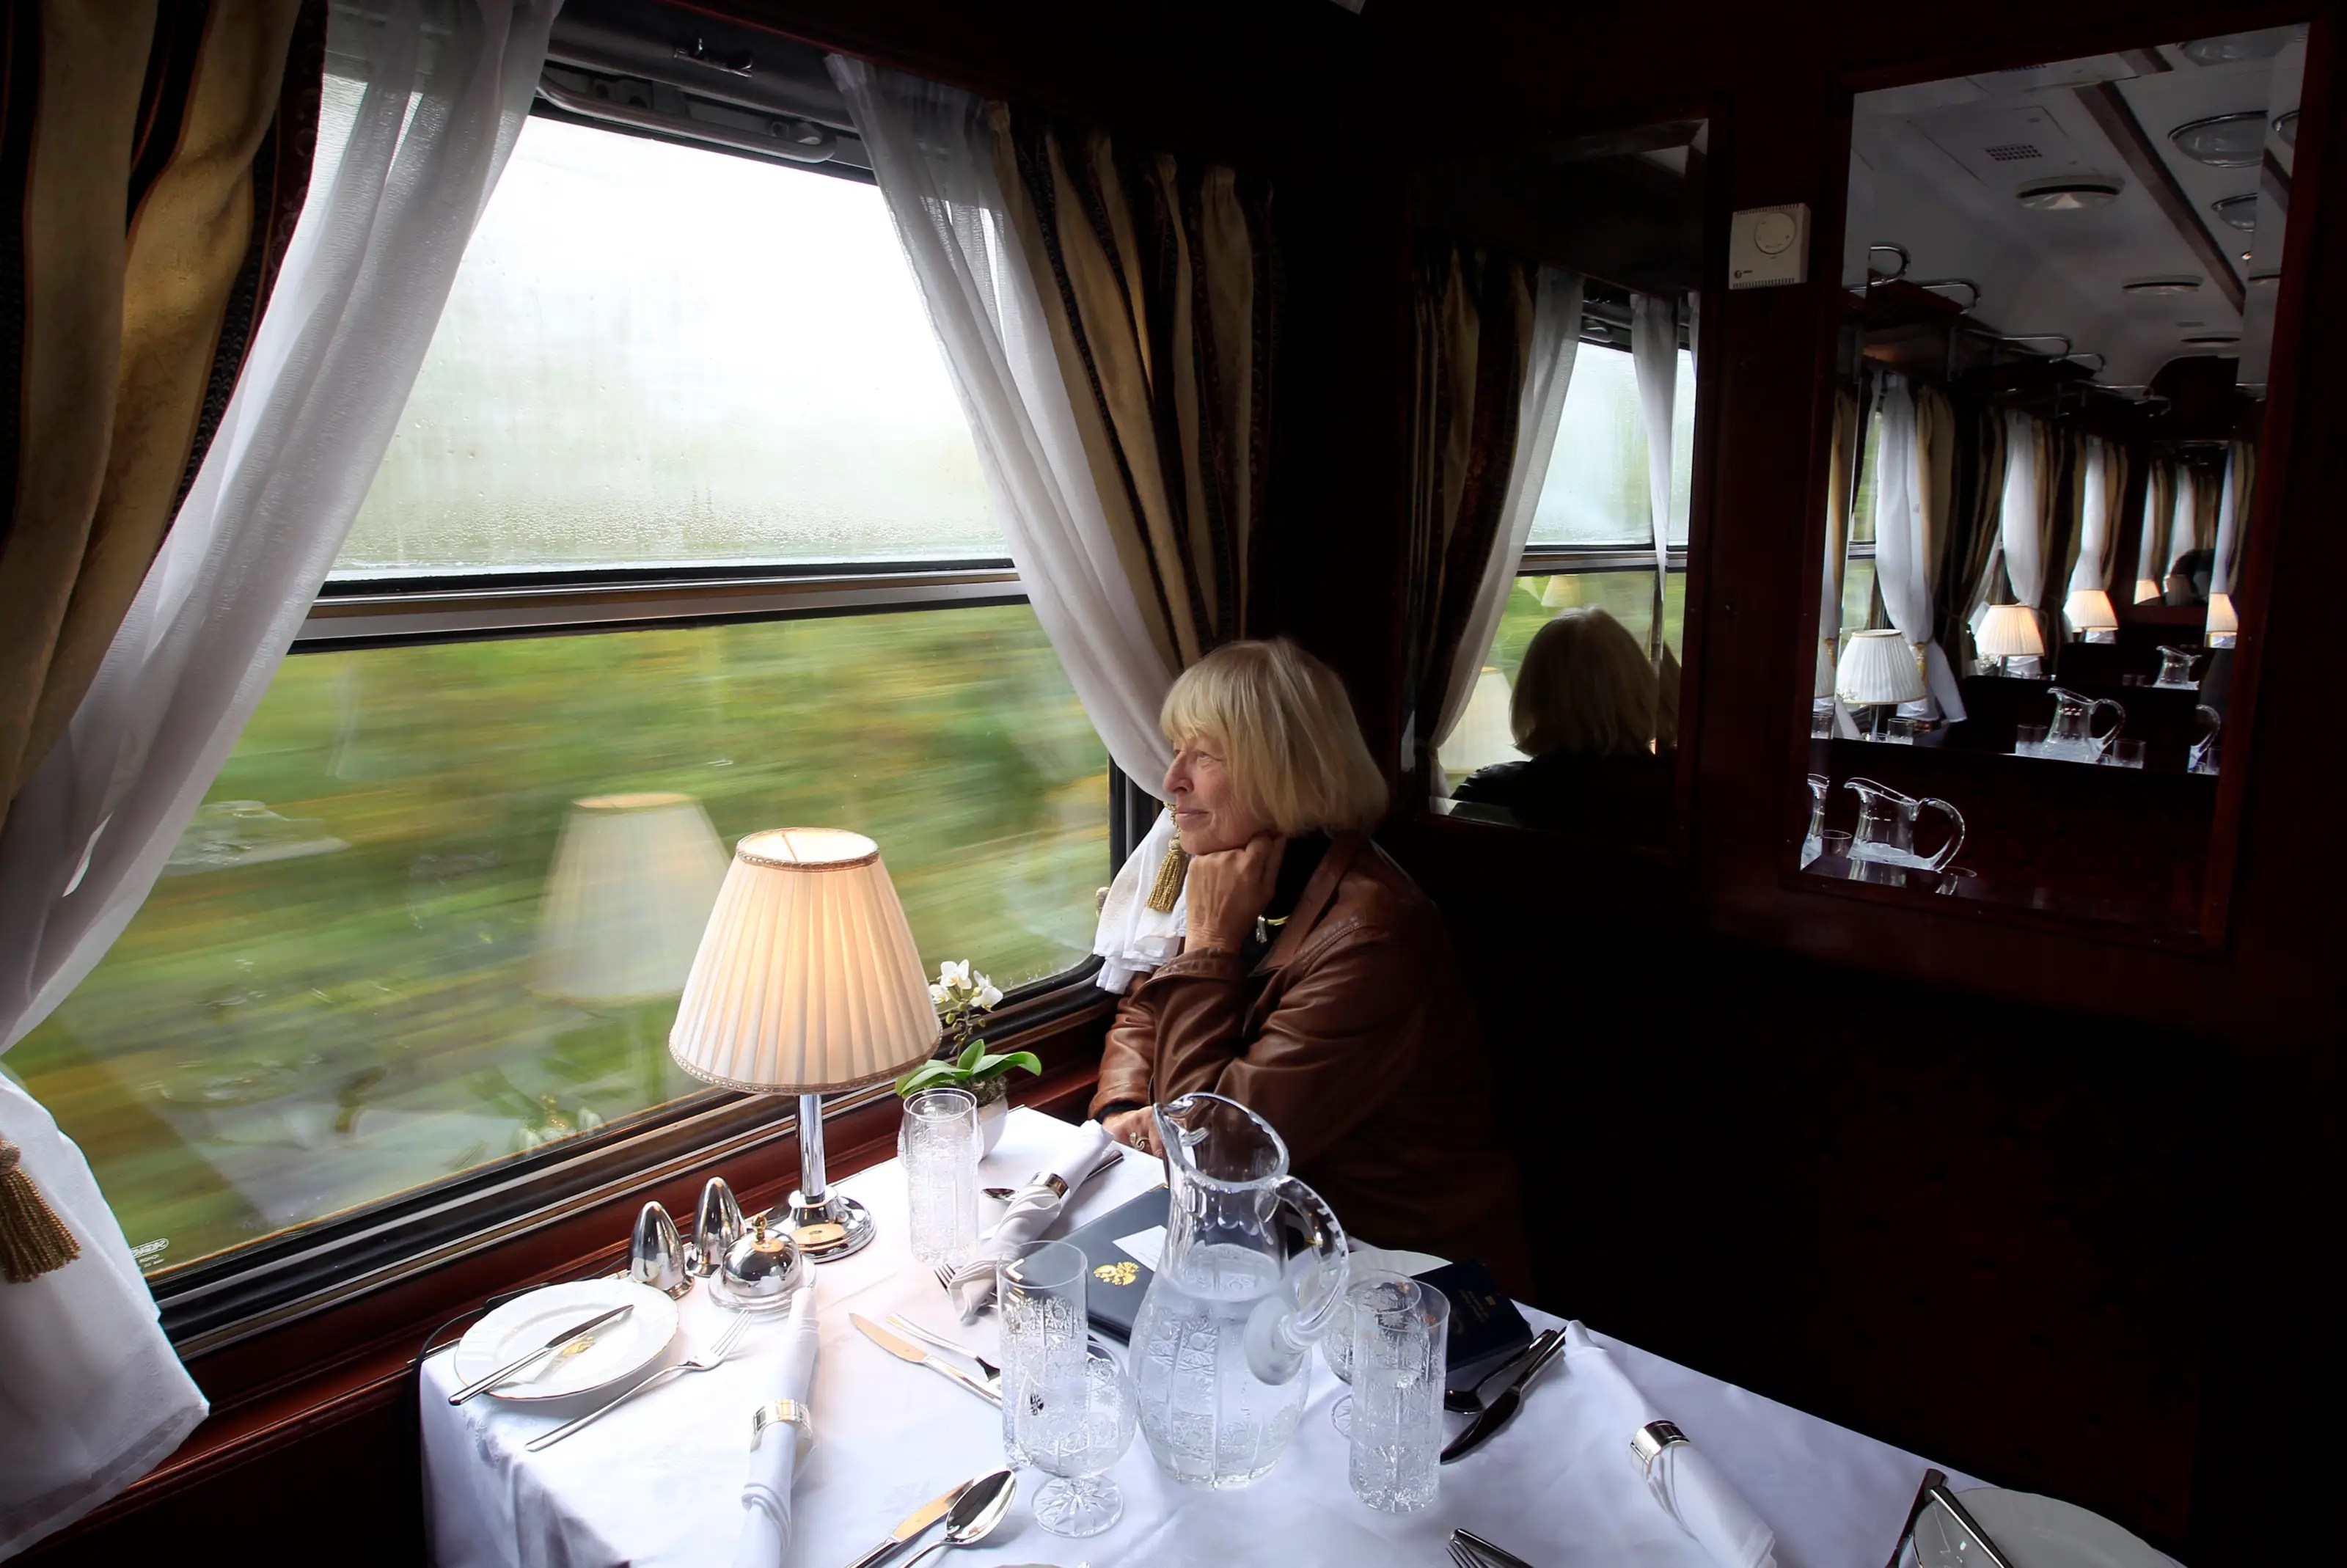 Luxury train travel normally costs between $1,000 and $2,000 a day according to Reuters, meaning the Golden Eagle train is actually sold at an average price. Any interest?